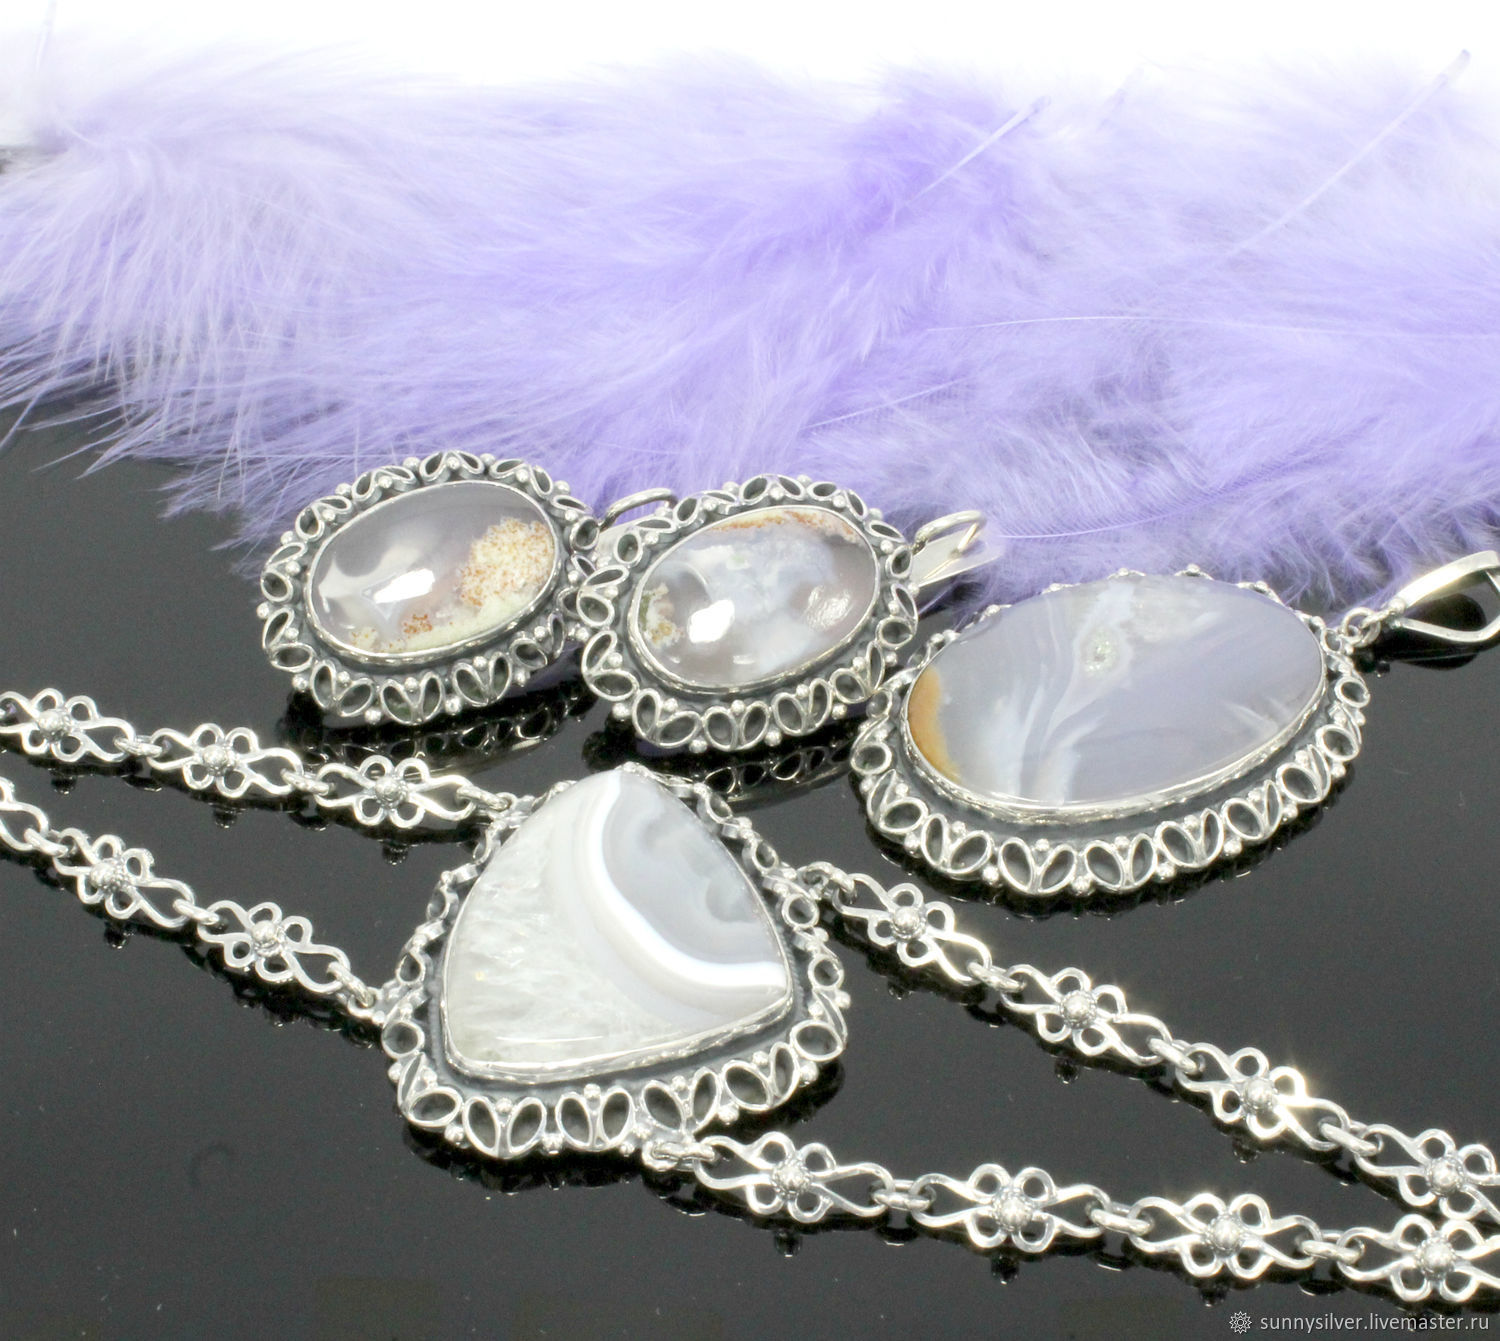 Asafoetida jewelry set with agates made of 925 silver (VIDEO), Jewelry Sets, Yerevan,  Фото №1